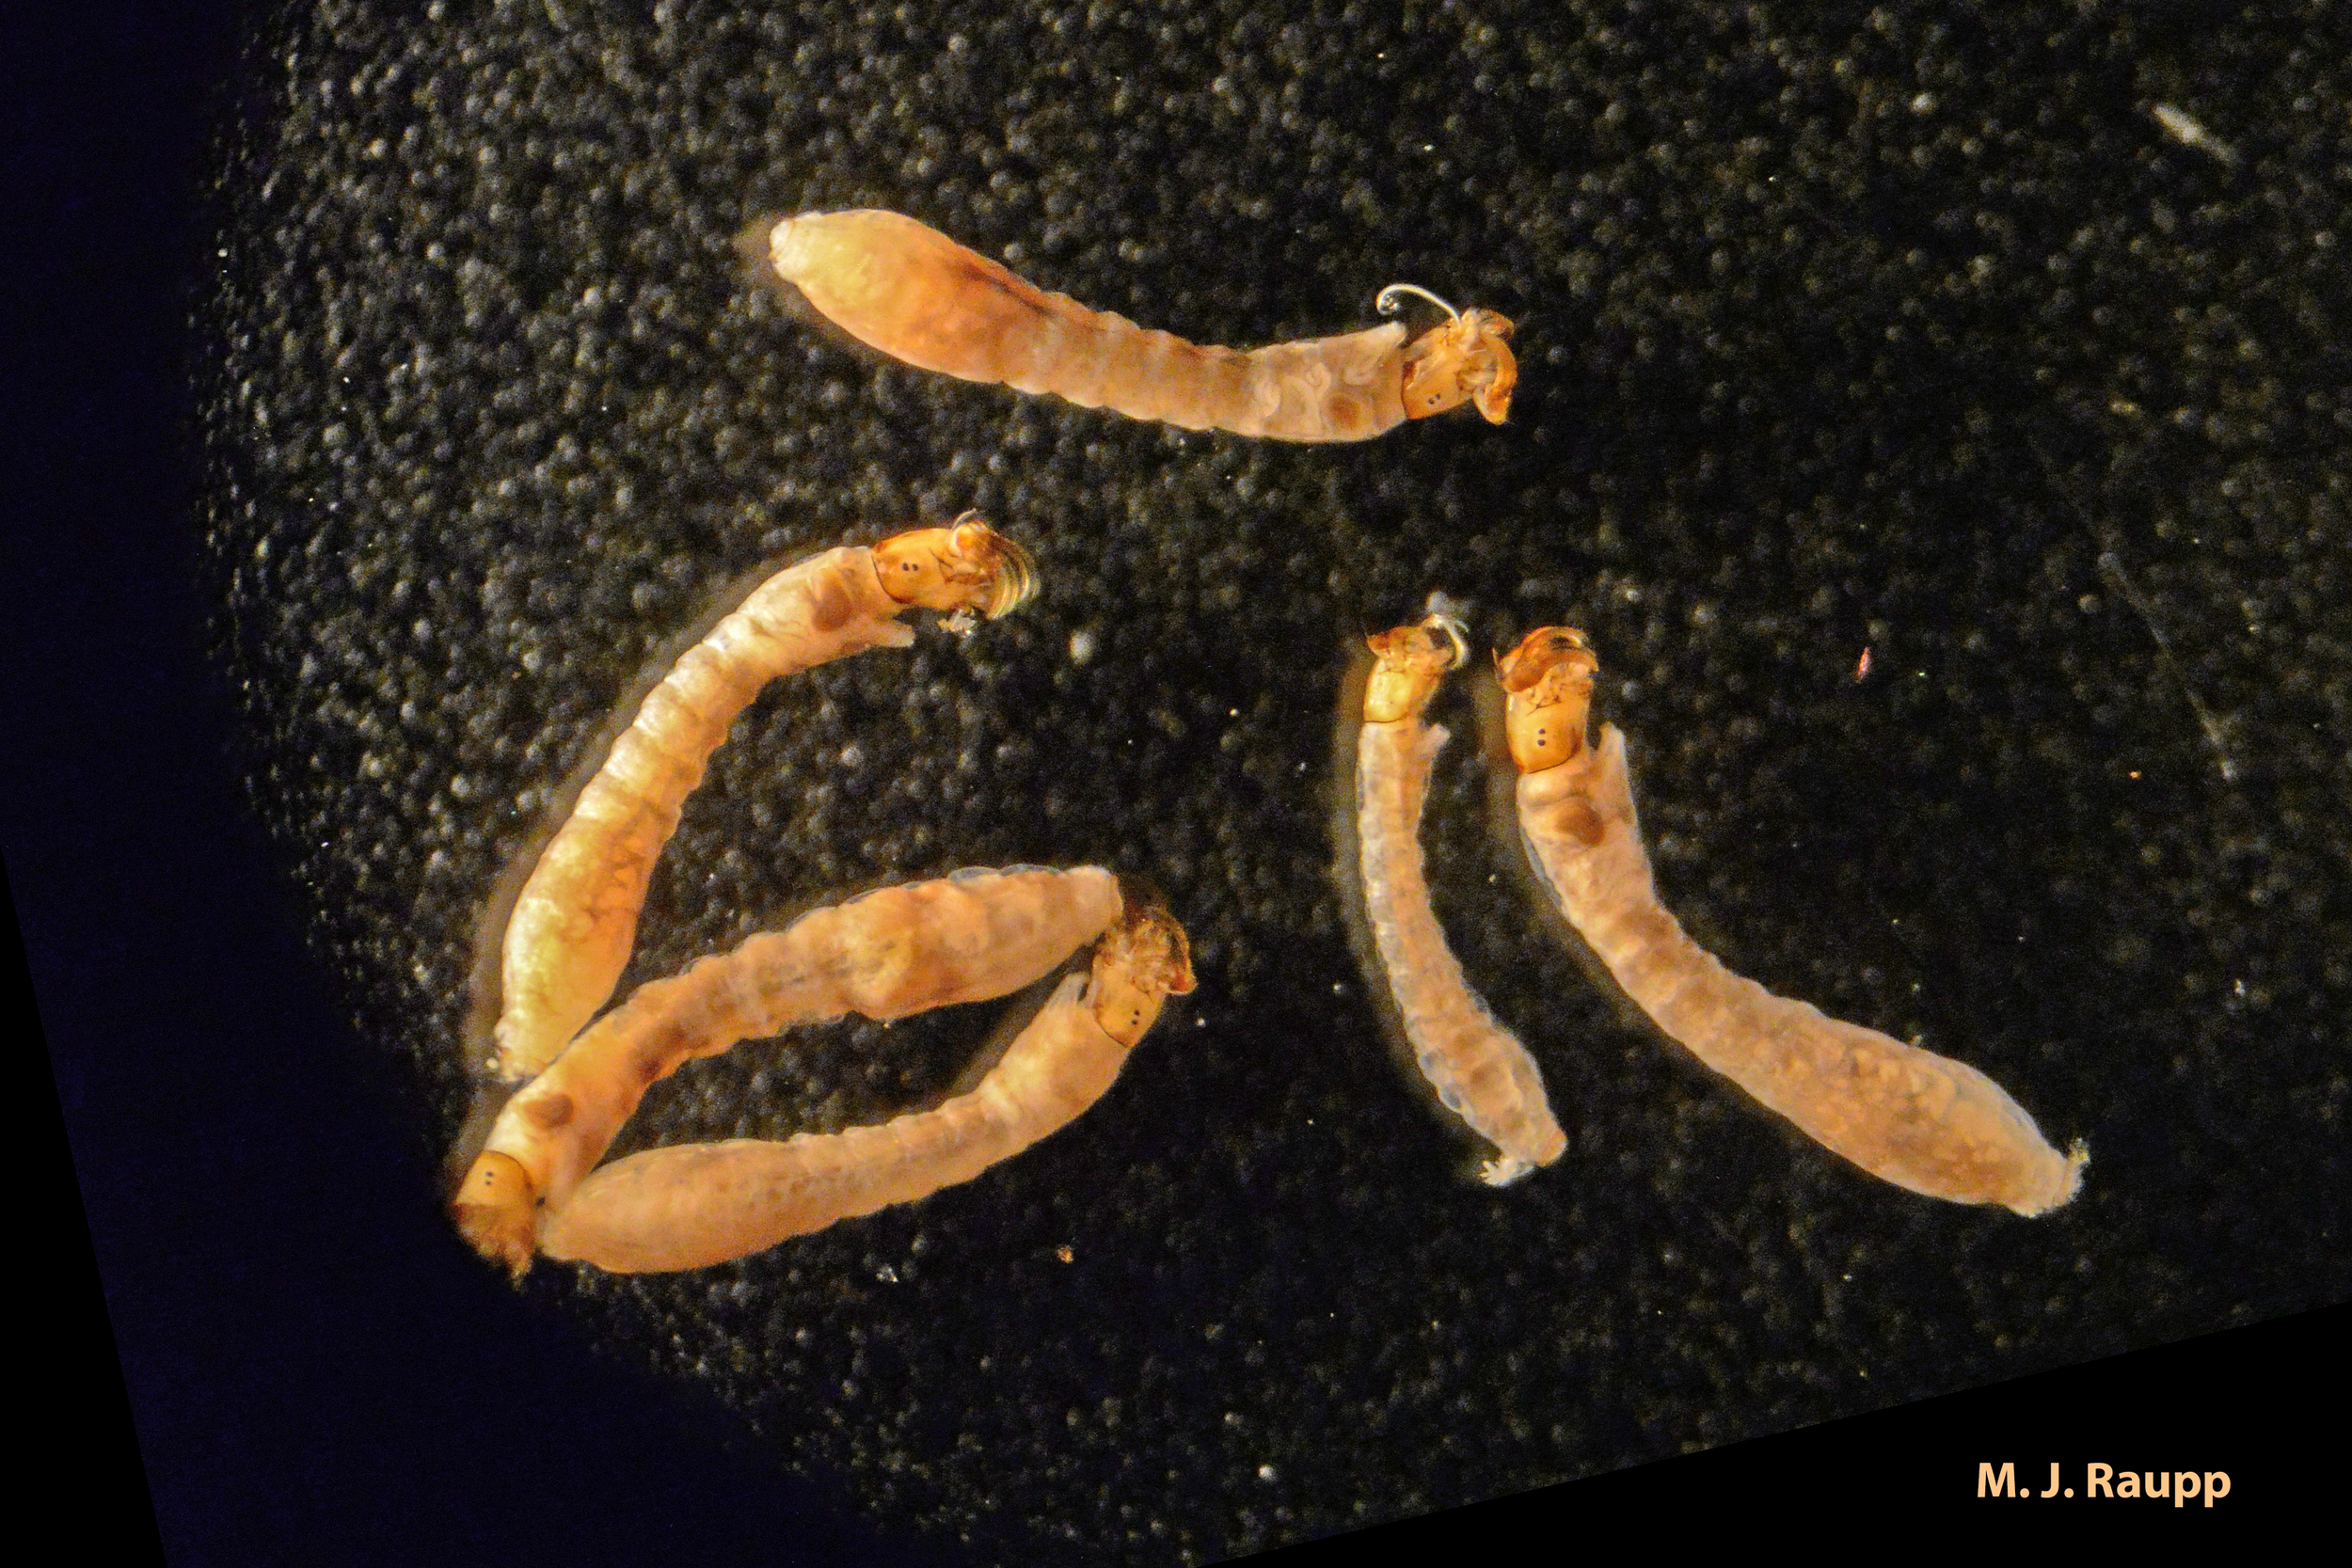 """Strange black fly larvae live the life aquatic where they attach to rocks and feed on minute animals and plants on the surface of the substrate.      Normal   0           false   false   false     EN-US   X-NONE   X-NONE                                                                                                                                                                                                                                                                                                                                                                    /* Style Definitions */  table.MsoNormalTable {mso-style-name:""""Table Normal""""; mso-tstyle-rowband-size:0; mso-tstyle-colband-size:0; mso-style-noshow:yes; mso-style-priority:99; mso-style-parent:""""""""; mso-padding-alt:0in 5.4pt 0in 5.4pt; mso-para-margin-top:0in; mso-para-margin-right:0in; mso-para-margin-bottom:10.0pt; mso-para-margin-left:0in; line-height:115%; mso-pagination:widow-orphan; font-size:11.0pt; font-family:""""Calibri"""",""""sans-serif""""; mso-ascii-font-family:Calibri; mso-ascii-theme-font:minor-latin; mso-hansi-font-family:Calibri; mso-hansi-theme-font:minor-latin;}"""